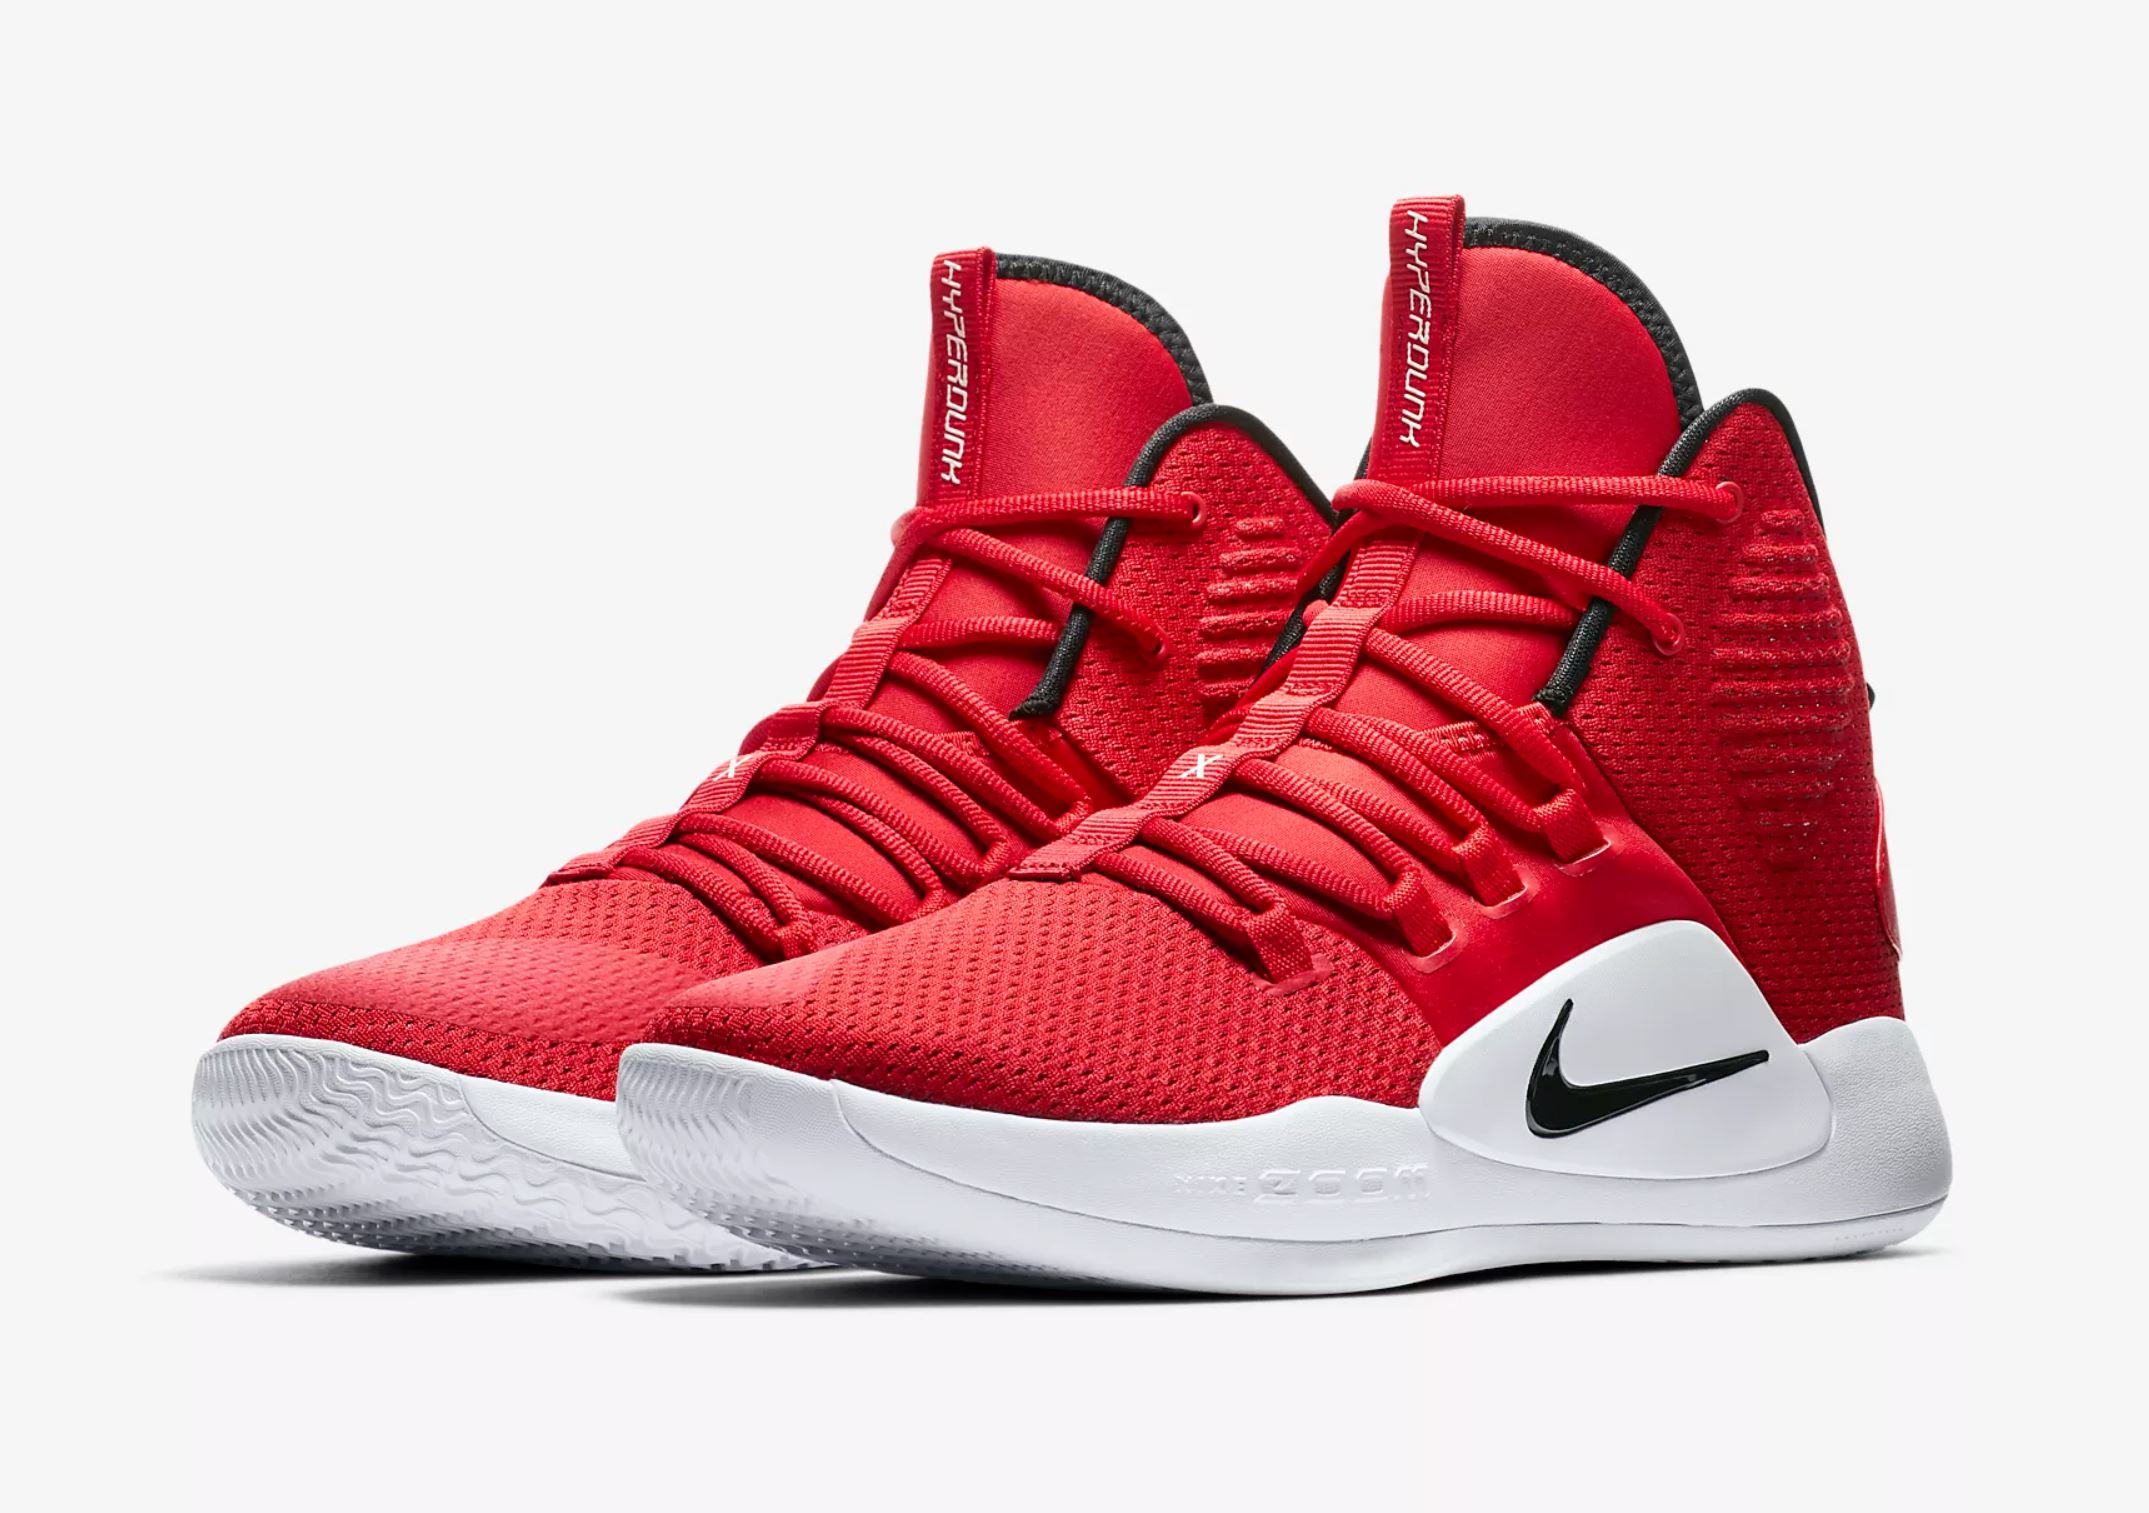 newest bce13 f9357 ... new images 6bb6f c6cfb coupon for nike hyperdunk x hyperdunk 2018 608fc  1168e ...